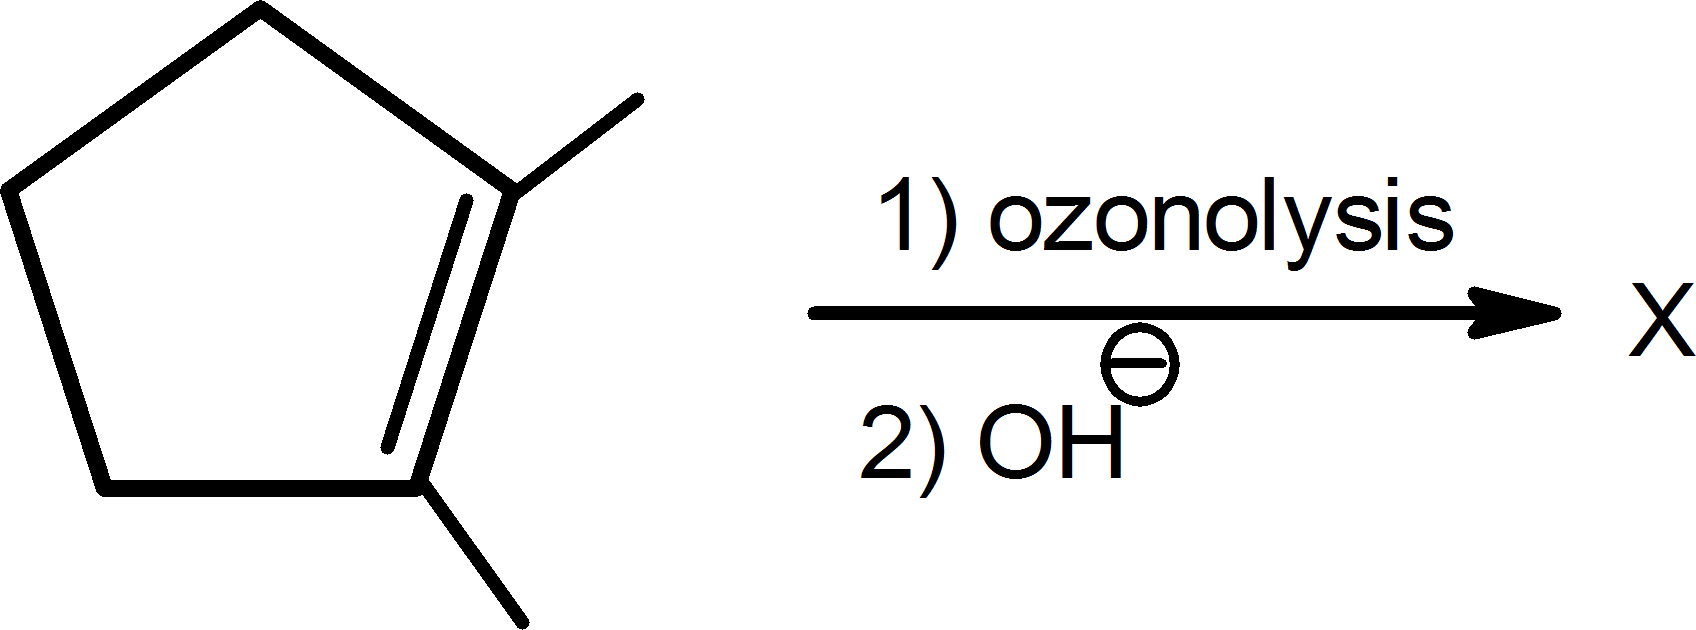 Ozonolysis result of the product is